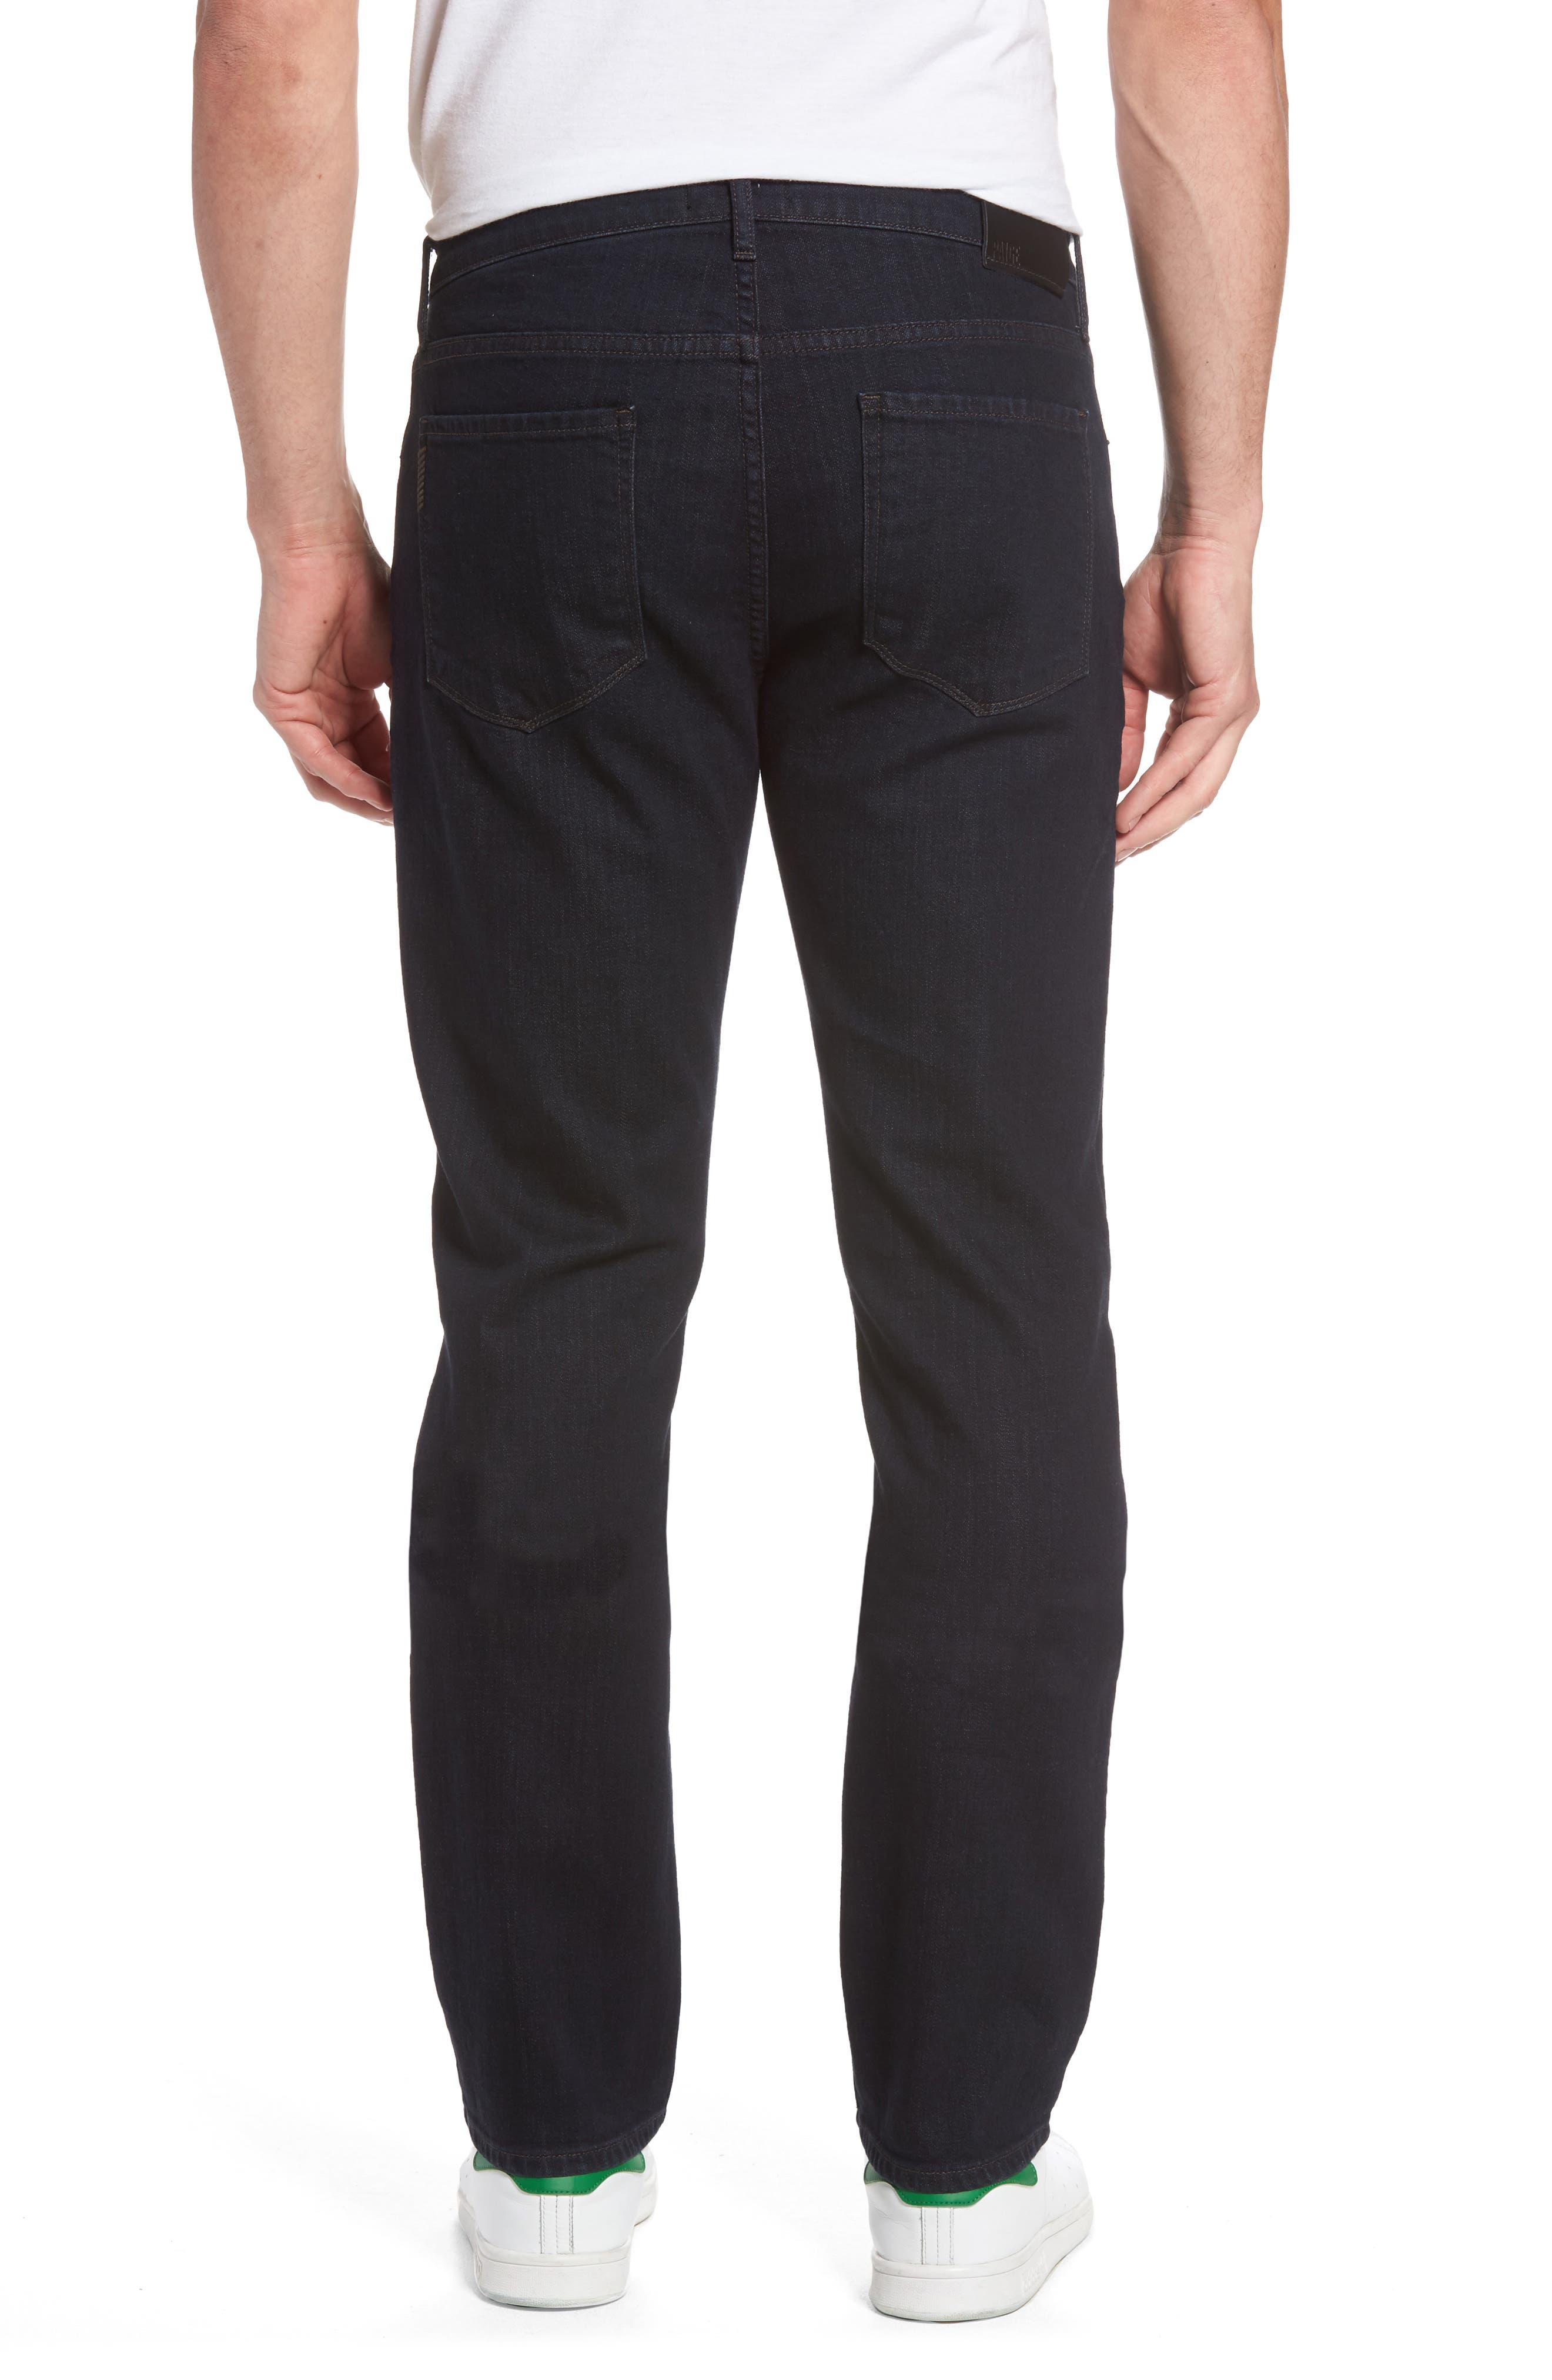 Normandie Straight Fit Jeans,                             Alternate thumbnail 2, color,                             400